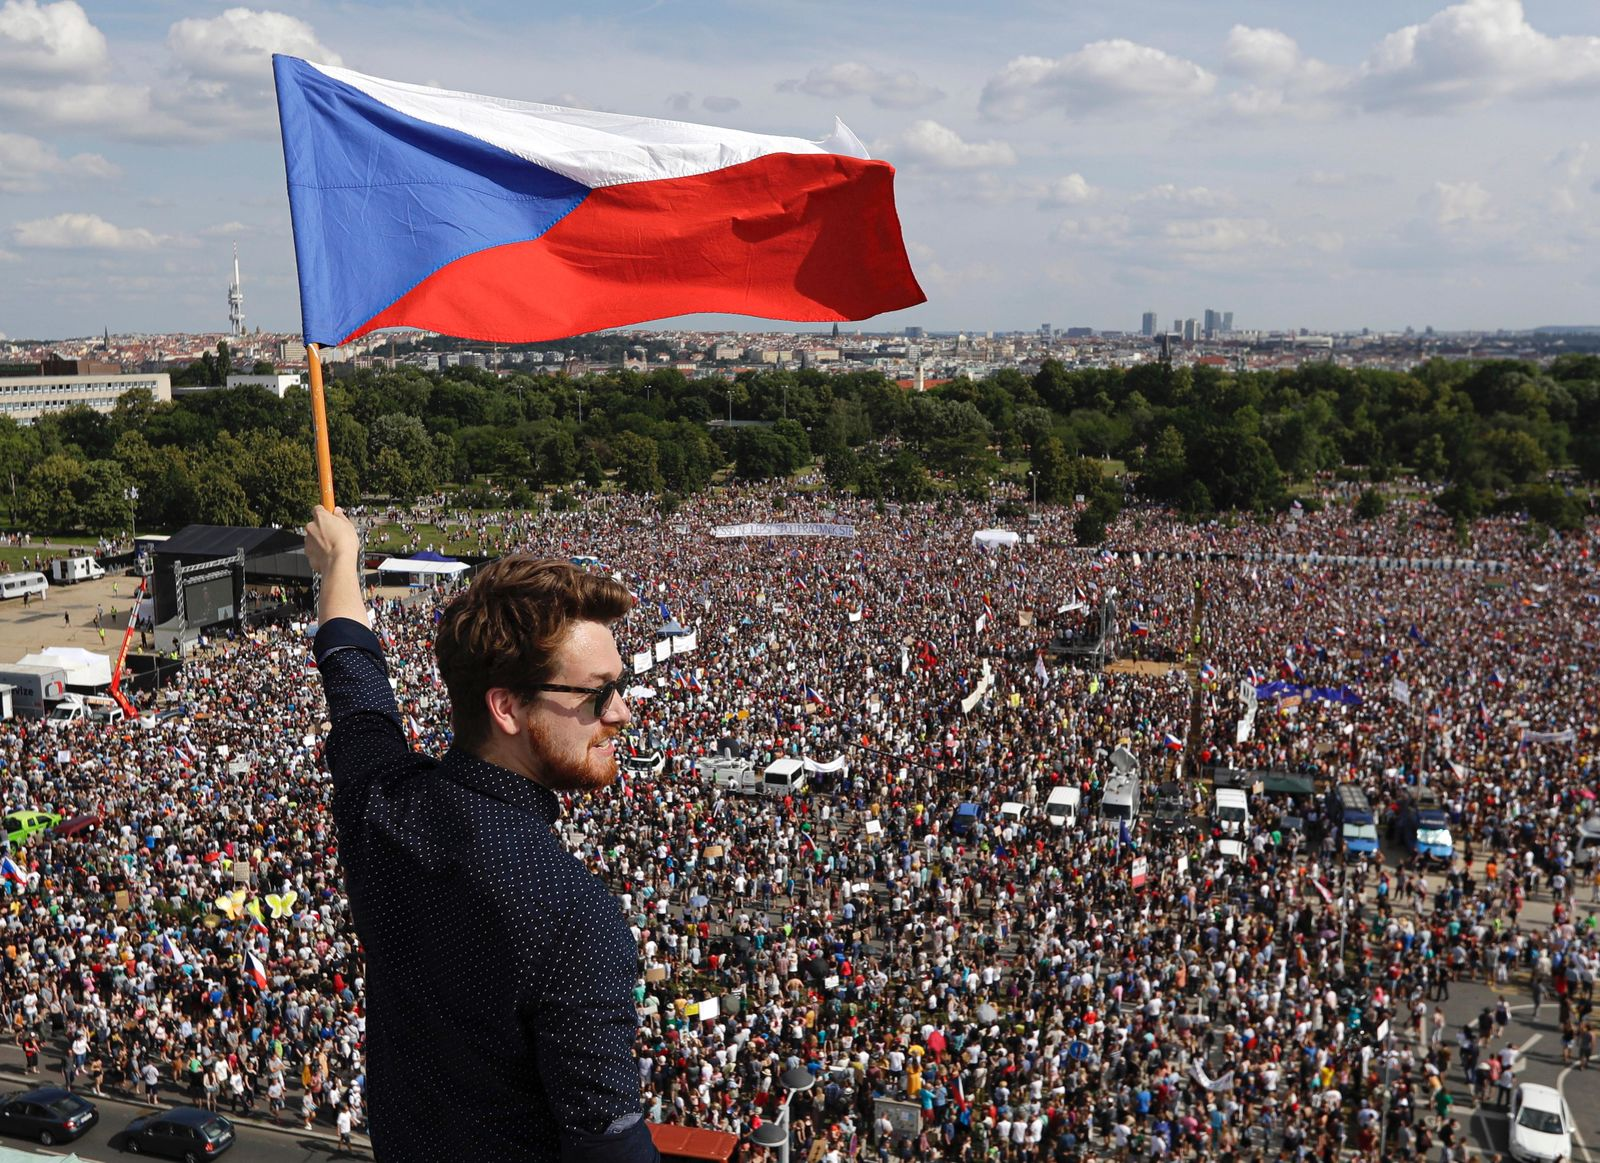 A man waves the Czech flag as people protest in Prague, Czech Republic, Sunday, June 23, 2019. Protesters are on calling on Czech Prime Minister Andrej Babis to step down over fraud allegations and subsidies paid to his former companies. (AP Photo/Petr David Josek)